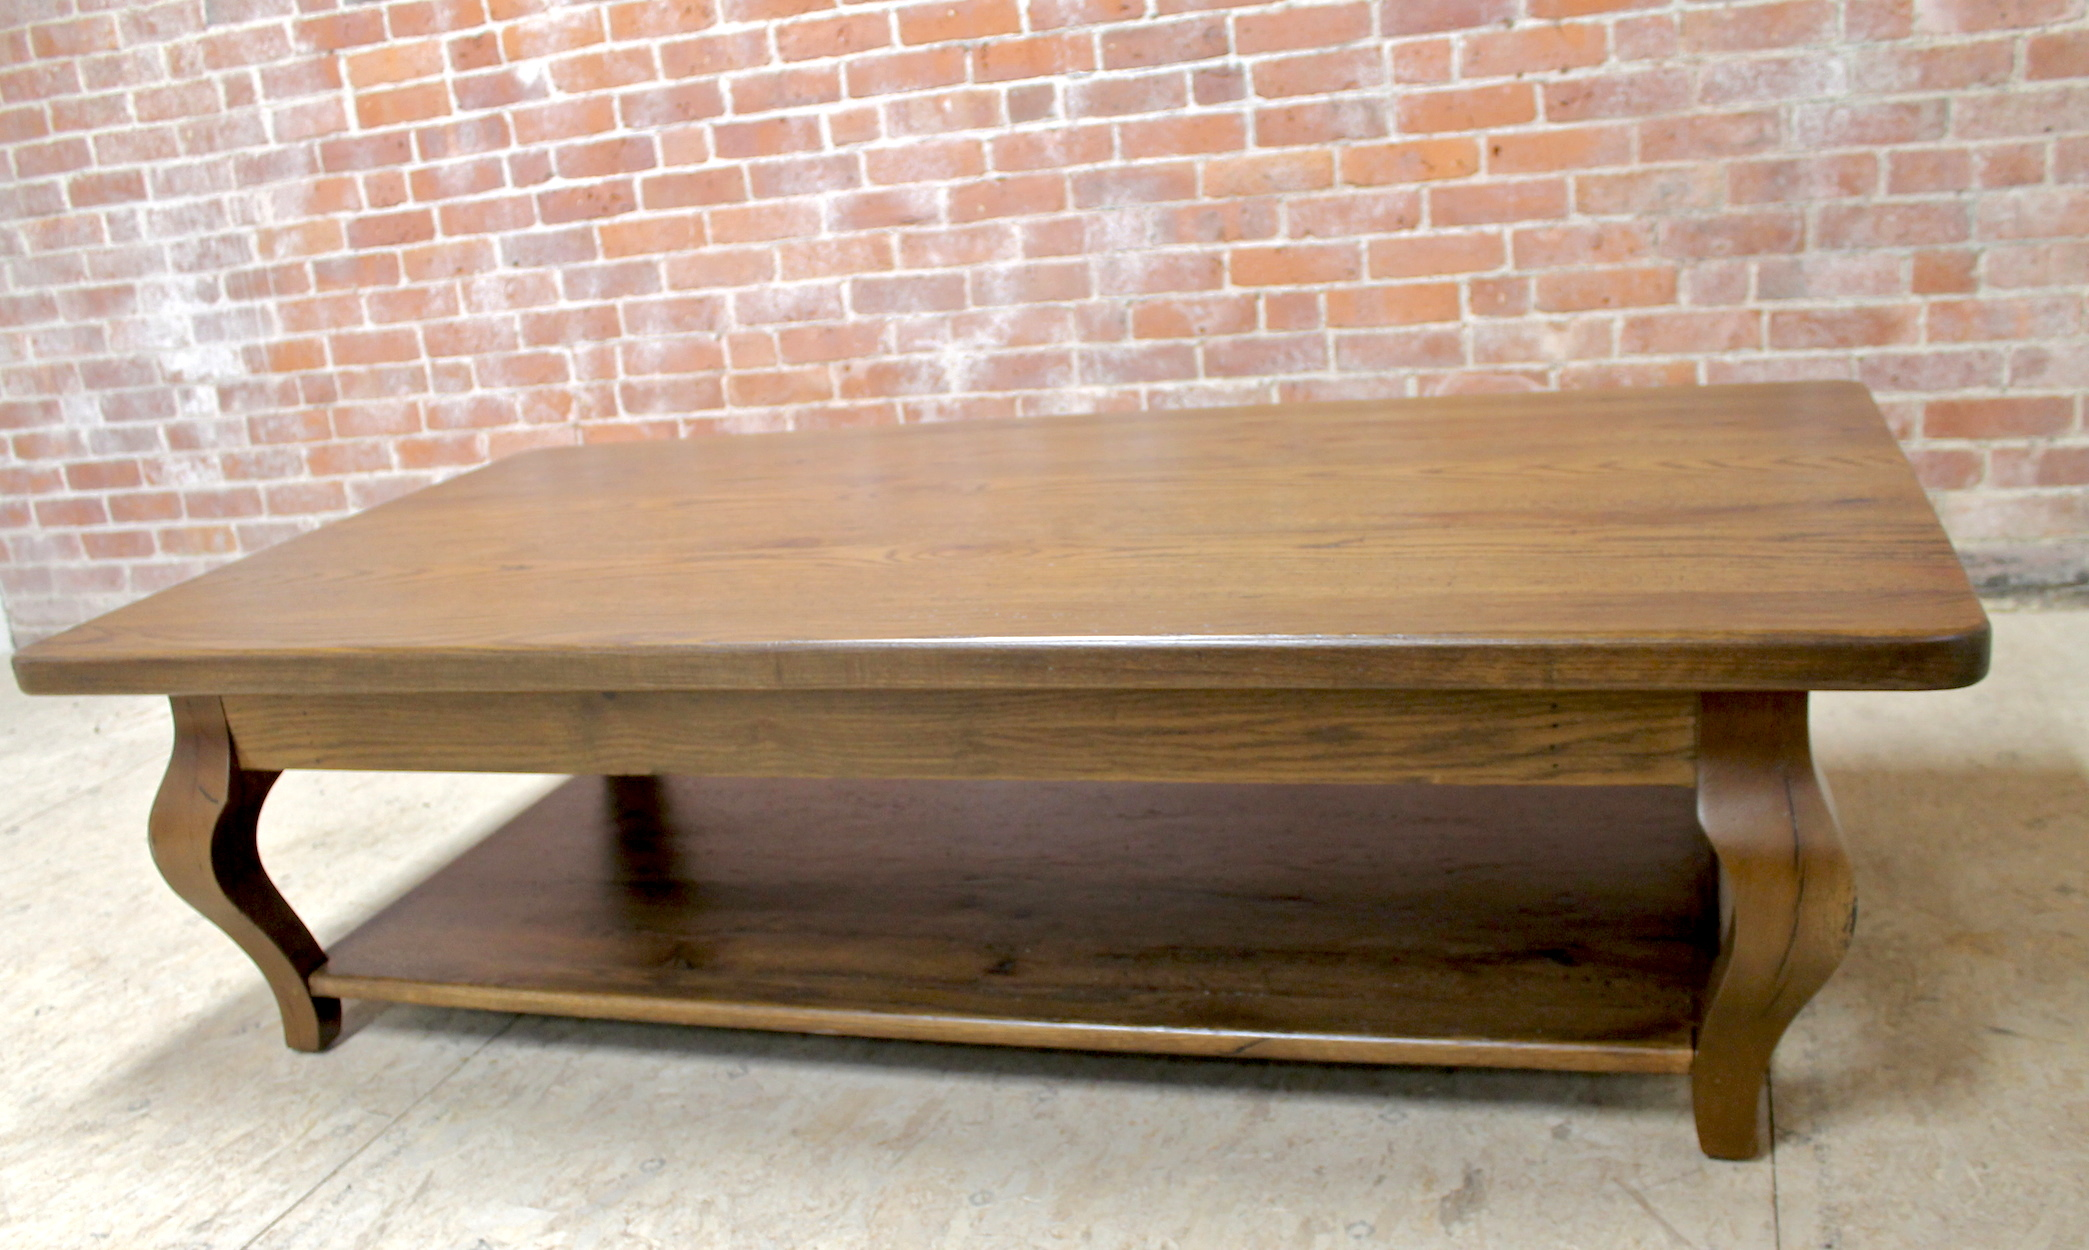 66in oak coffee table in antique walnut